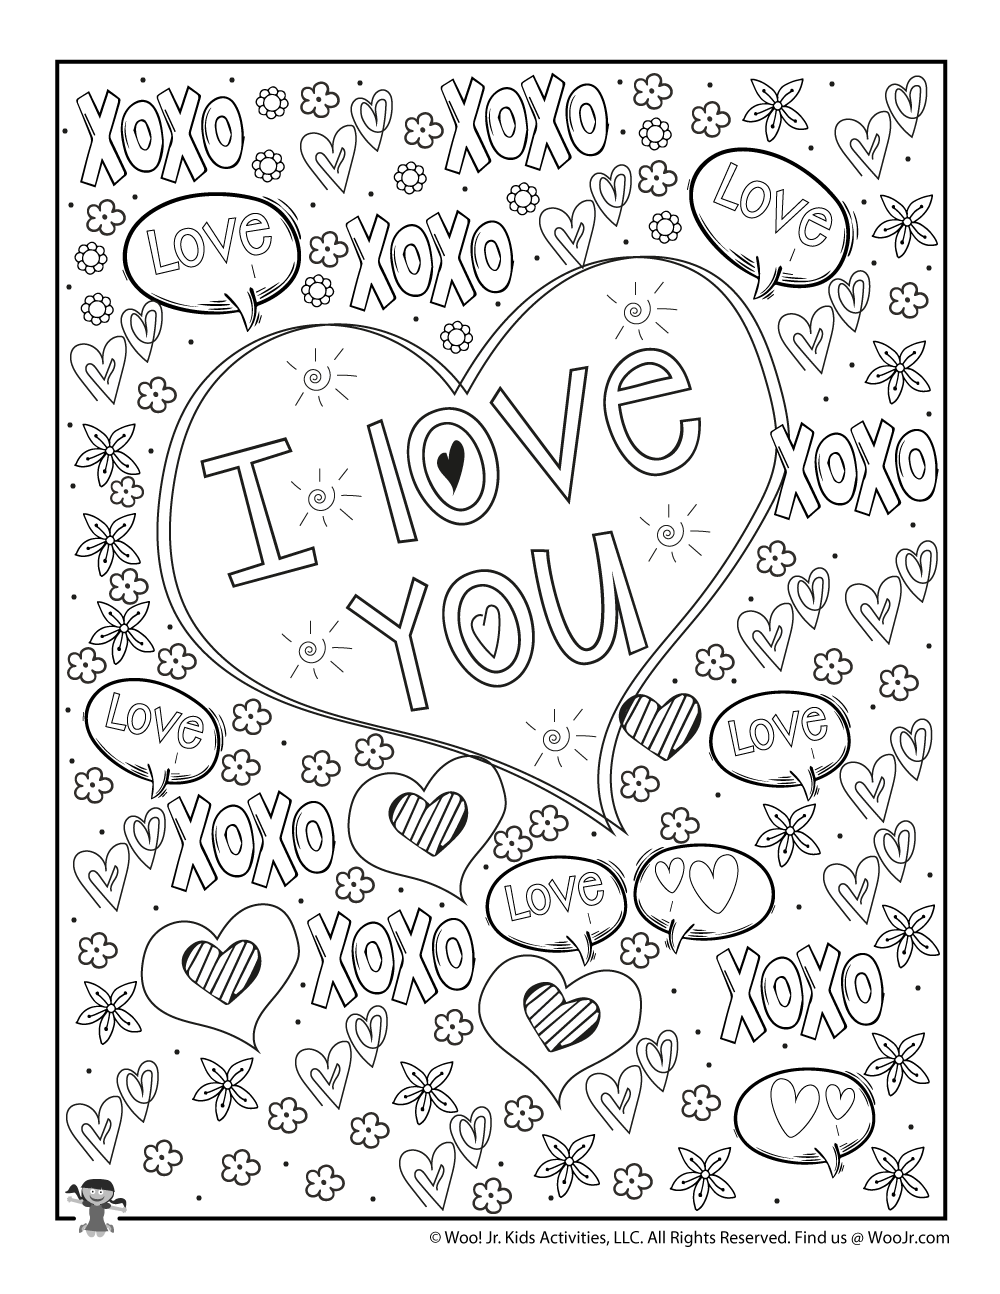 I Love You Hugs & Kisses Valentine's Day Coloring Page